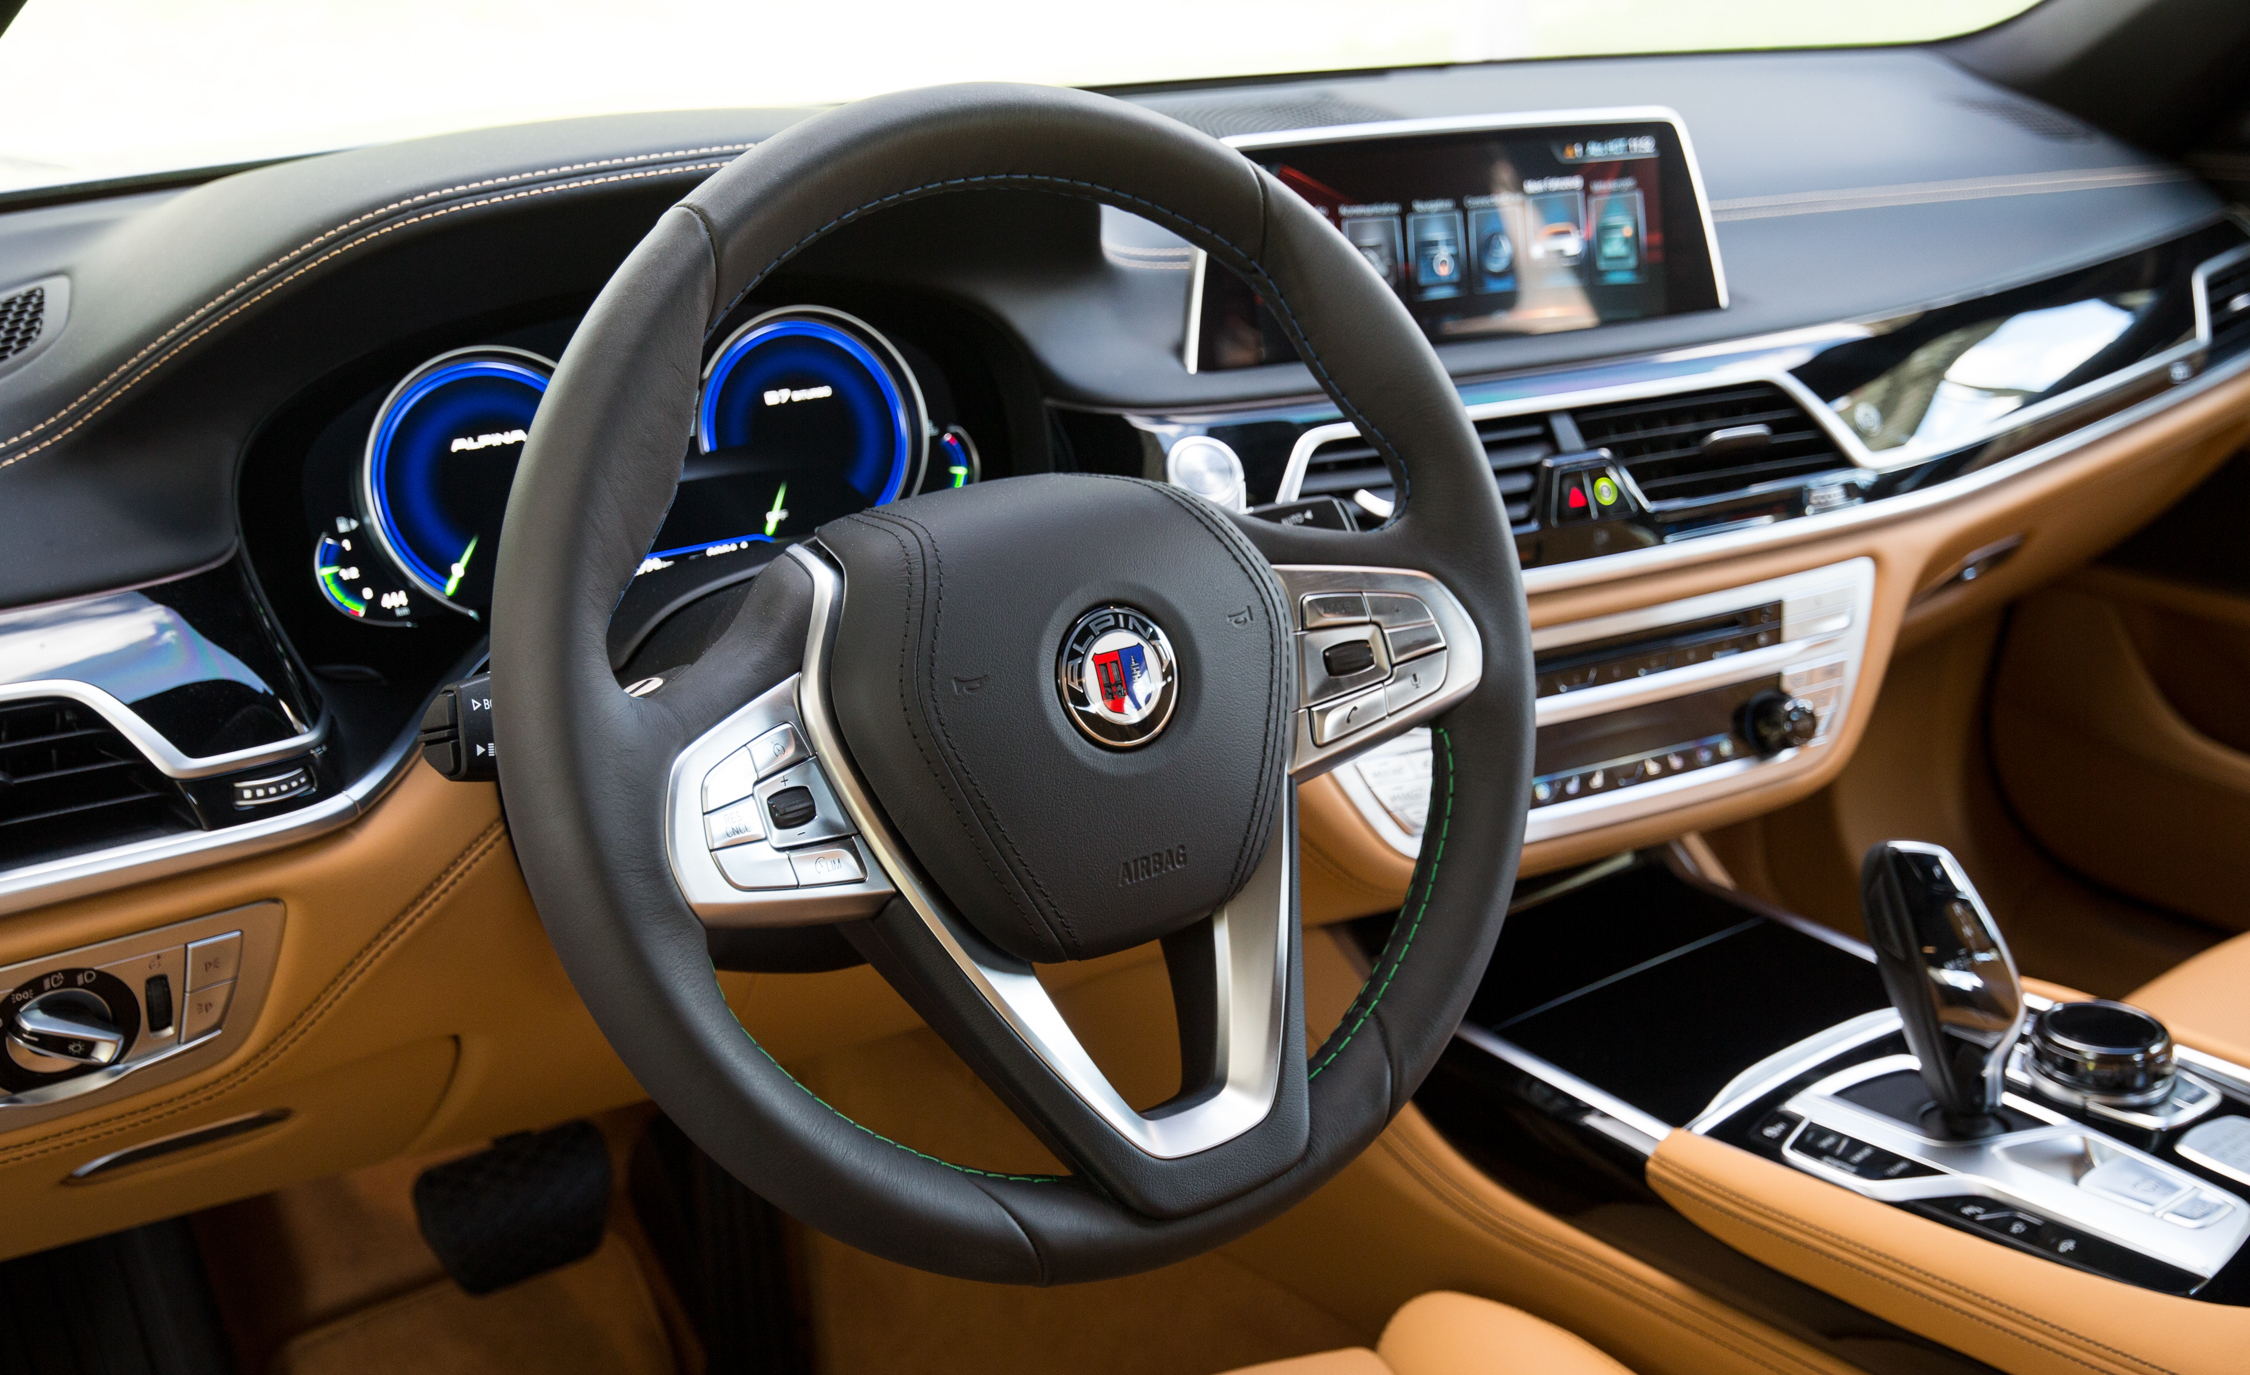 2017 BMW Alpina B7 Interior View Steering Wheel (Photo 21 of 45)